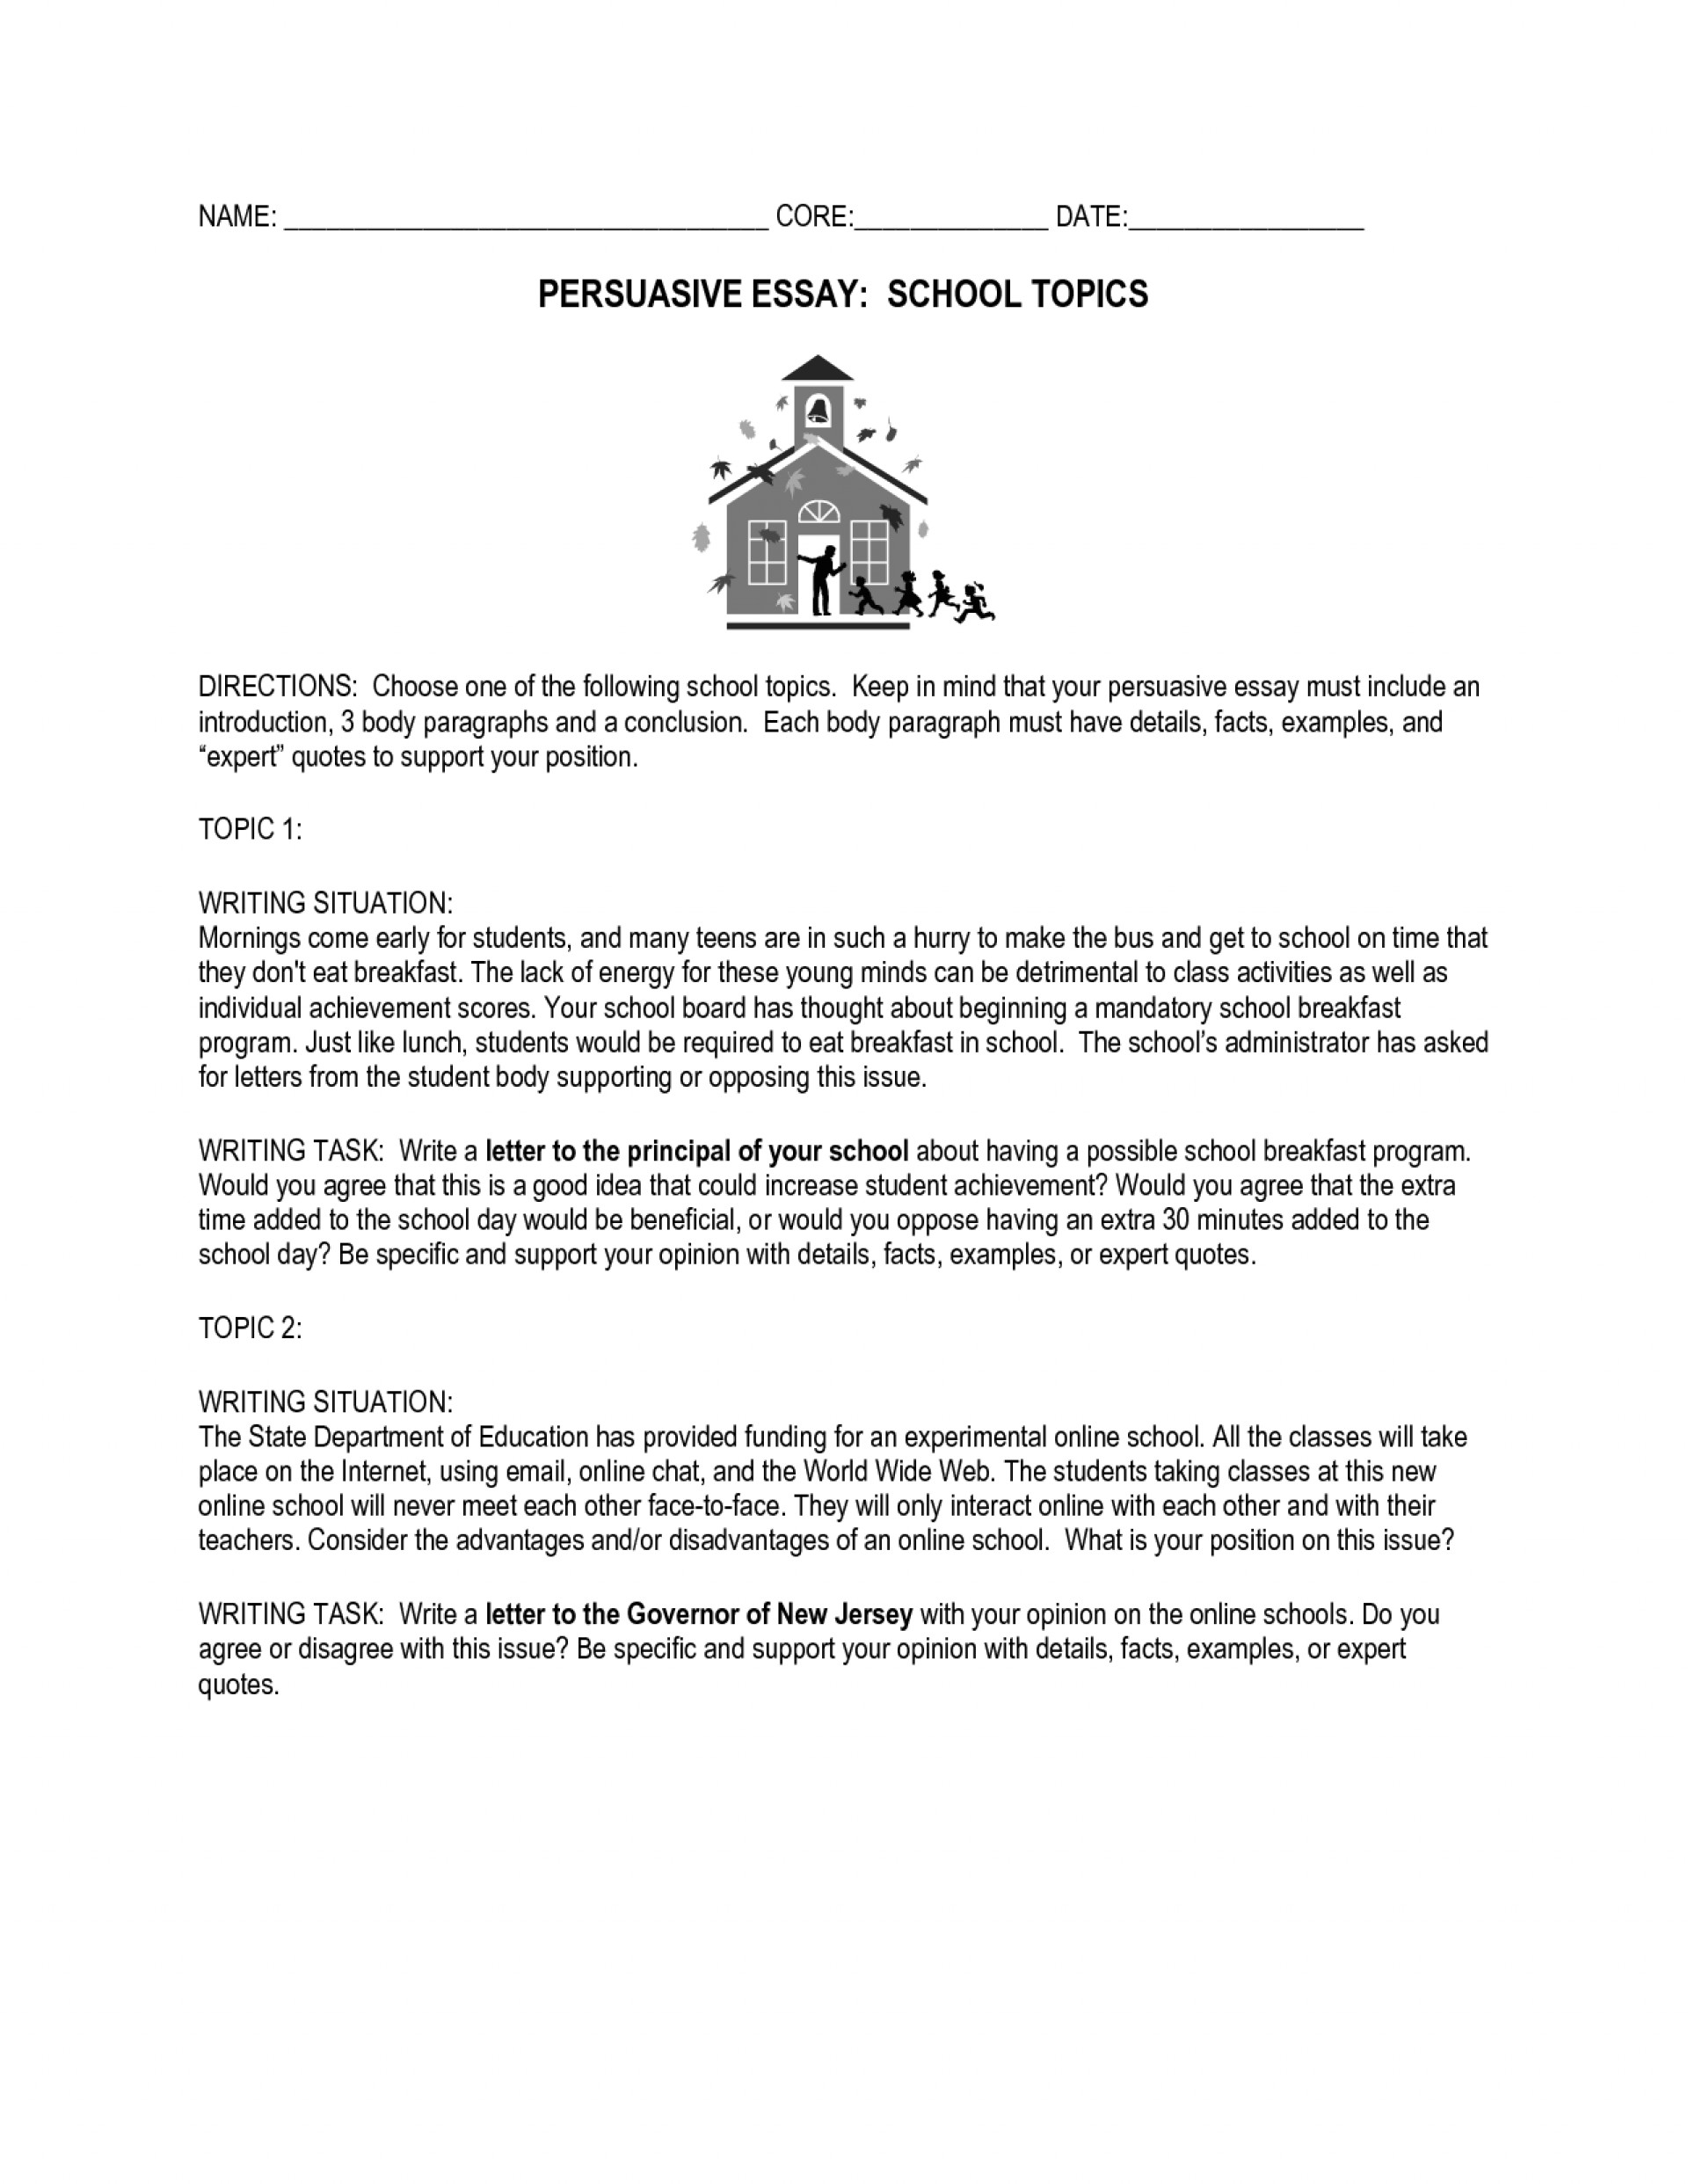 015 Essay Example Writing Conclusion To An Argumentative On School Persuasive Examples Surprising High For Highschool Students Short 1920